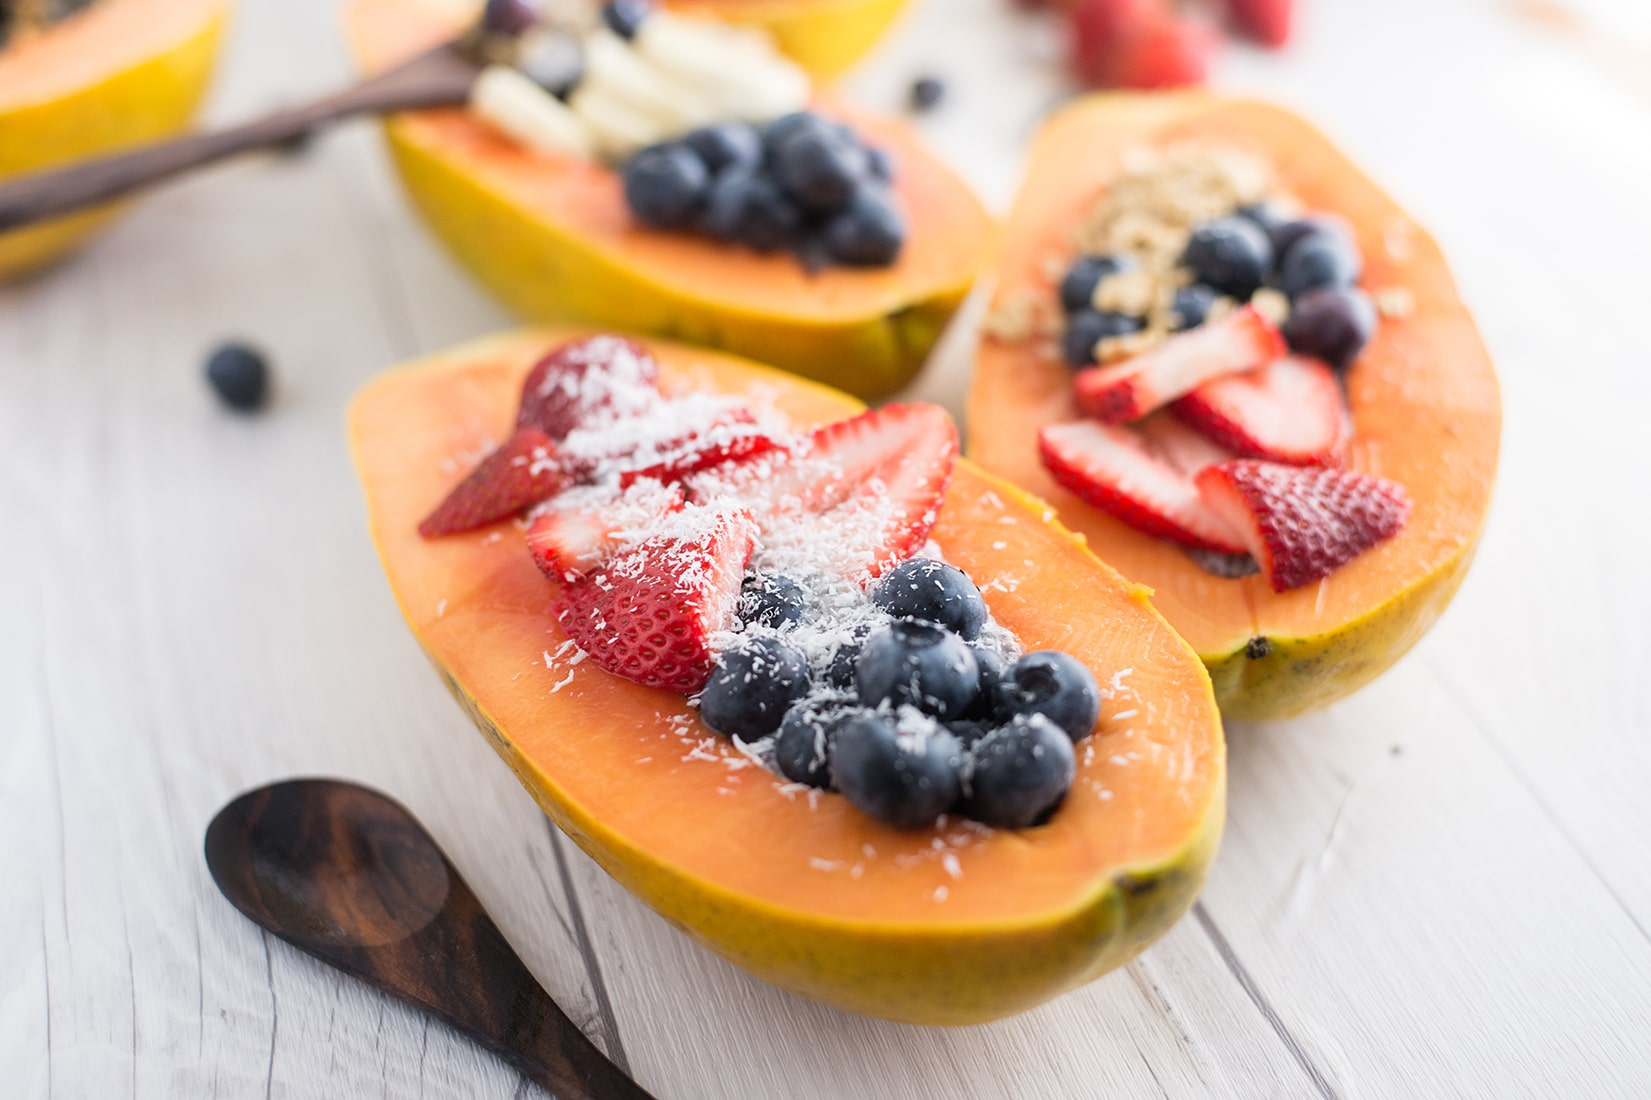 papaya boats with blueberries, strawberries, shredded coconut on a white wood background